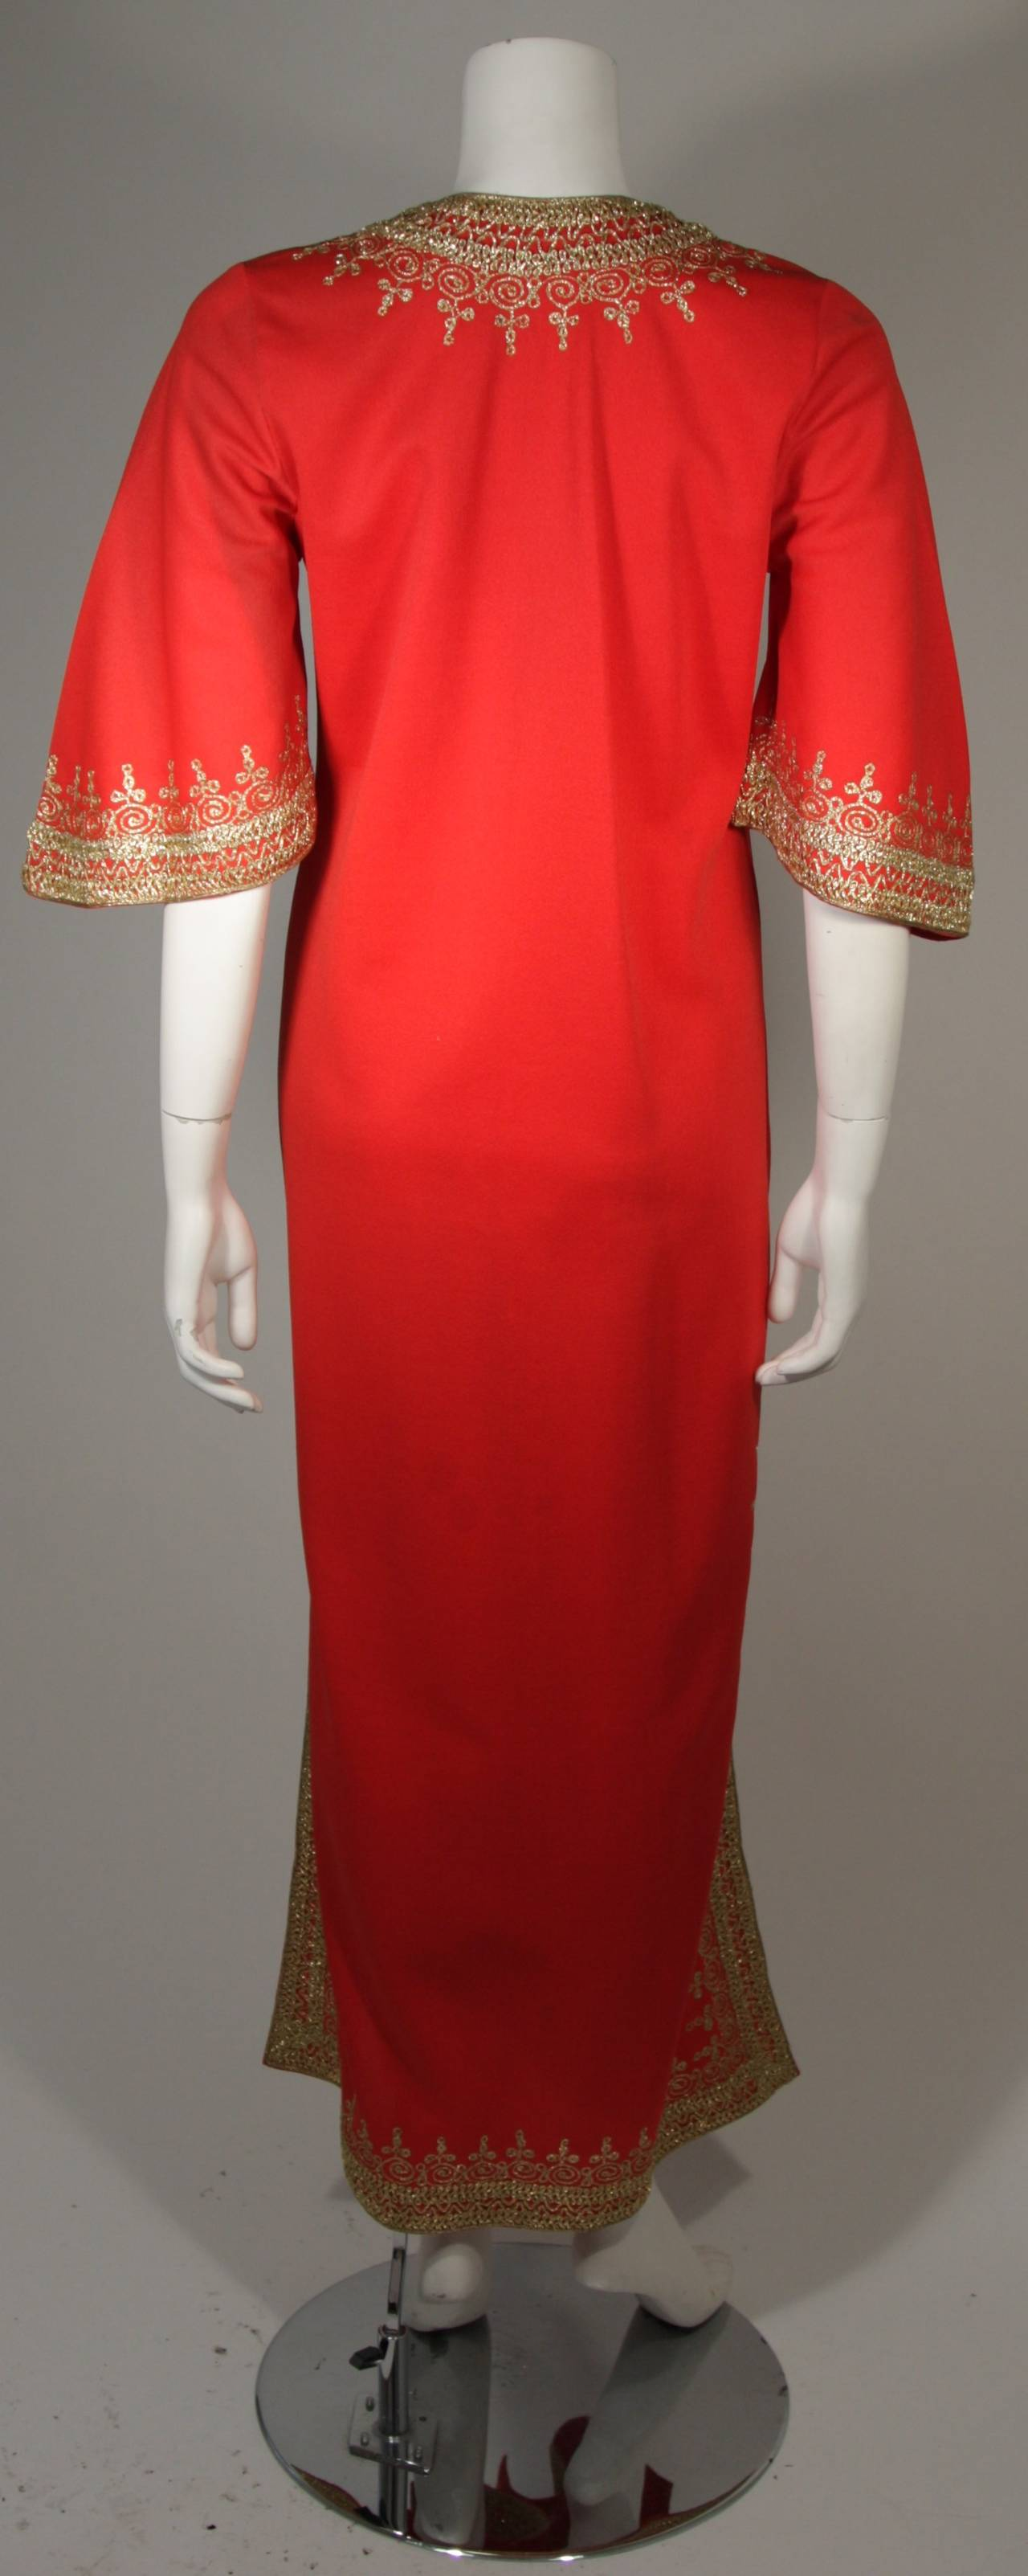 Custom Orange and Gold Indian Kaftan Size Small For Sale 2